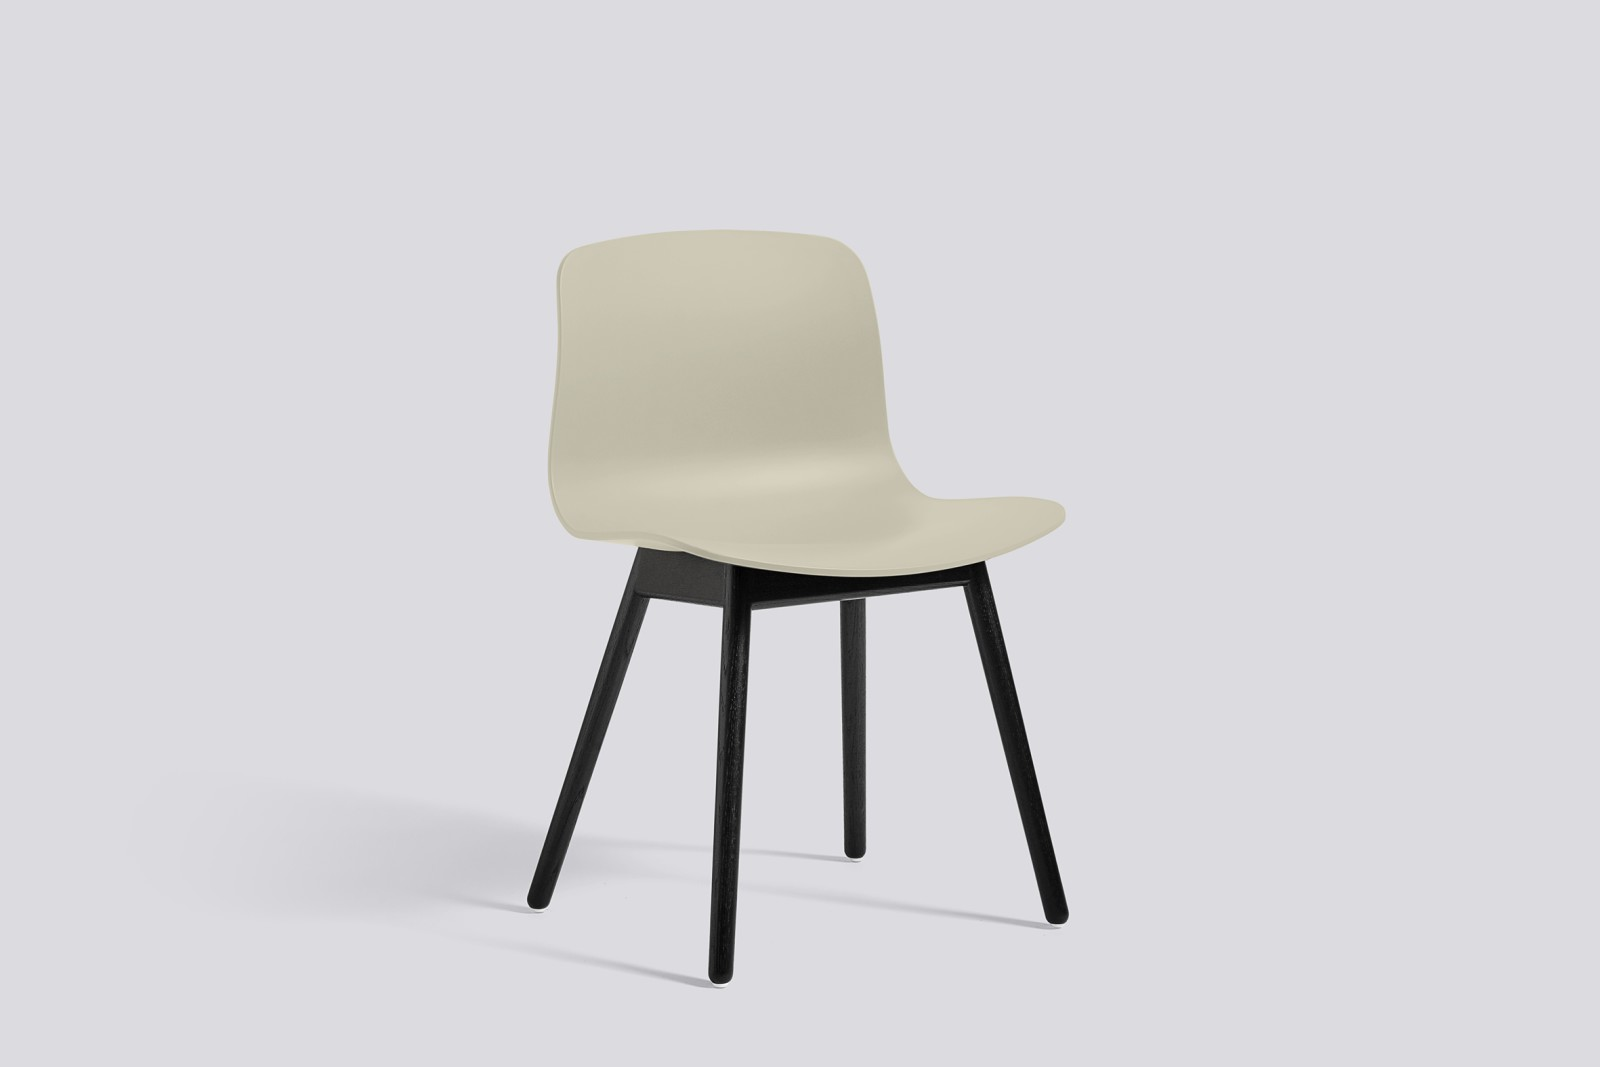 About A Chair AAC12 Pastel Green Seat and Black Stained Base